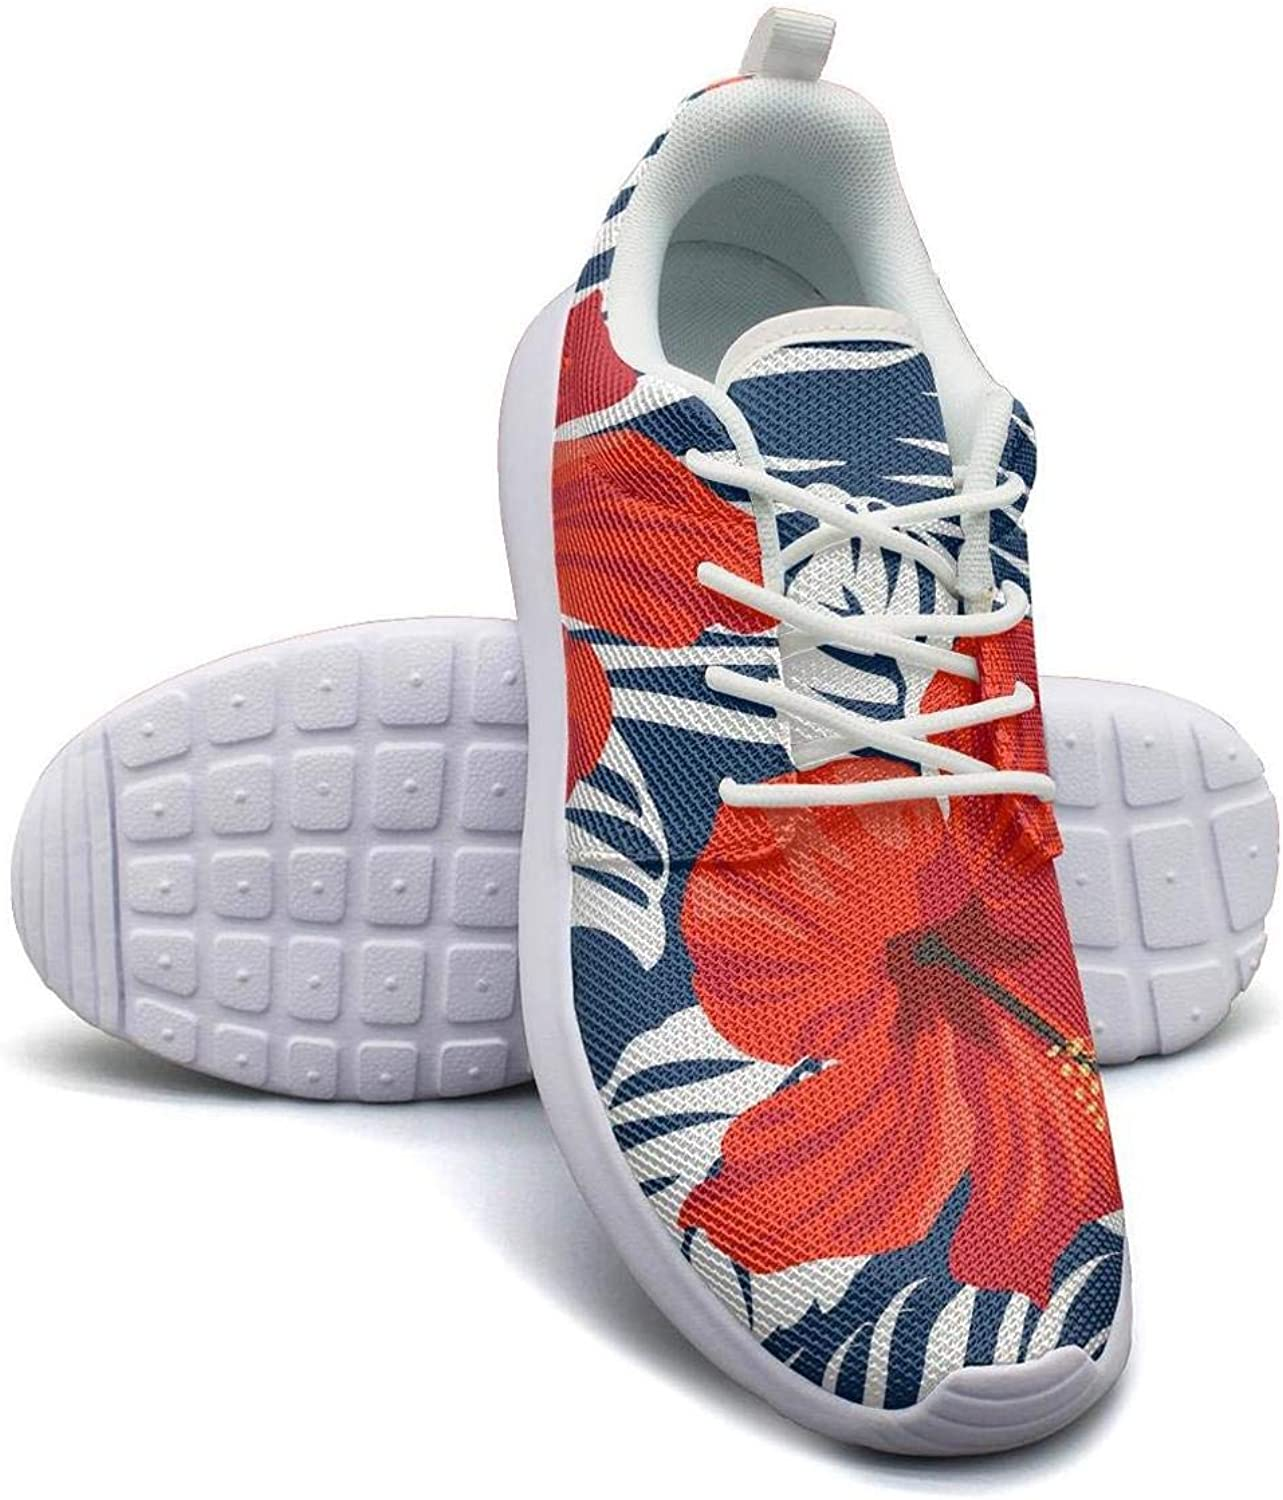 CHALi99 Casual Women's Lightweight Mesh shoes Tropical Floral Exotic Hibiscus Loafers Running Lace-Up